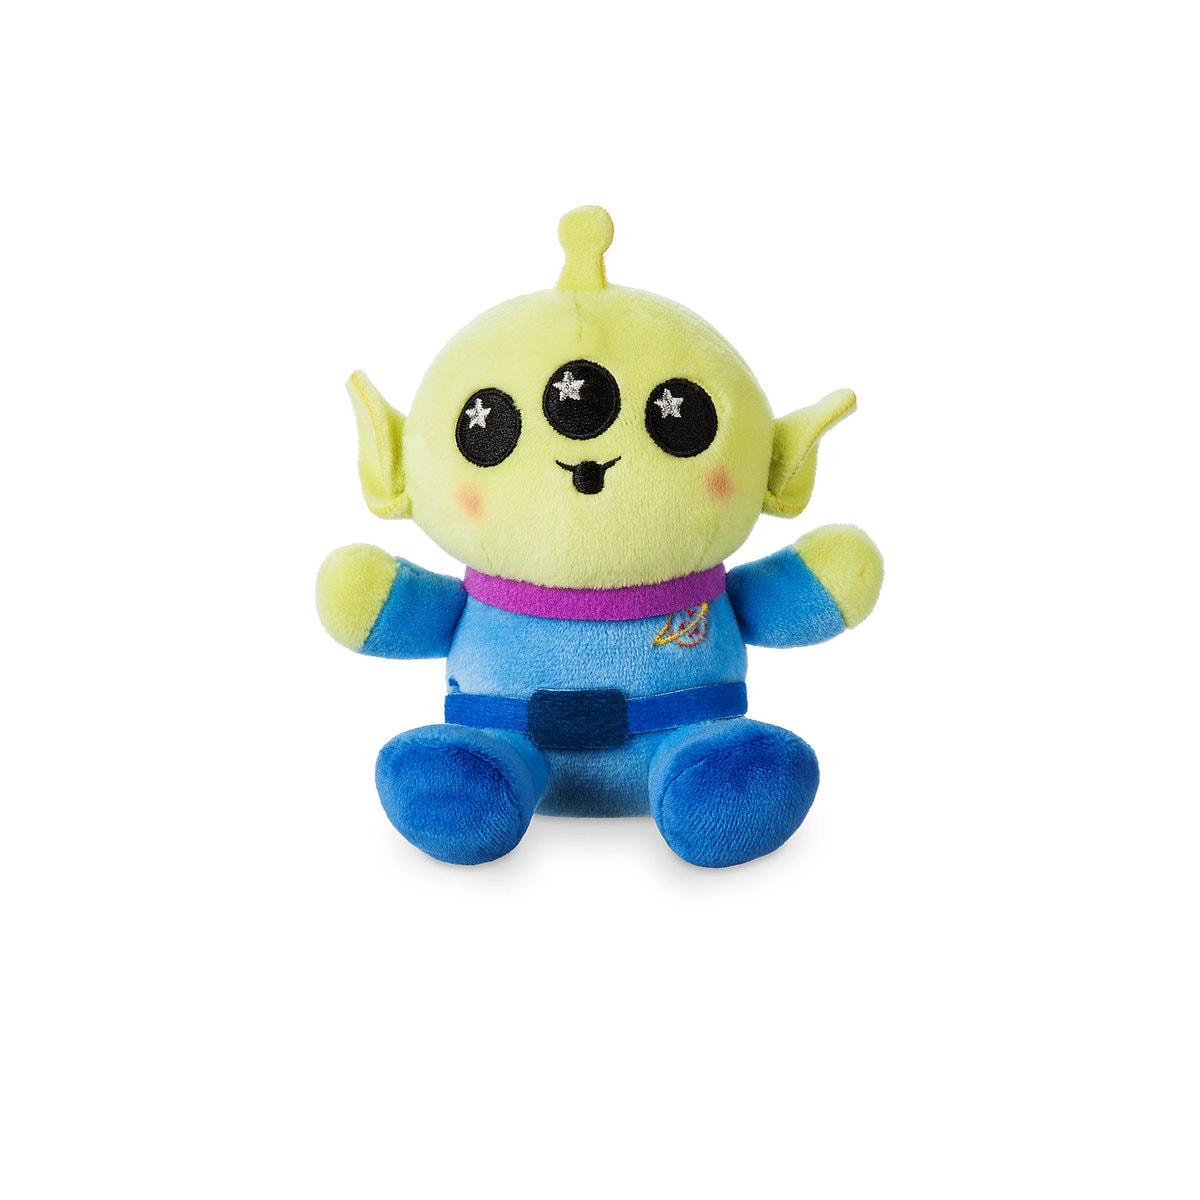 c4b53a4324 Product Image of Toy Story Alien Disney Parks Wishables Plush - Micro # 1